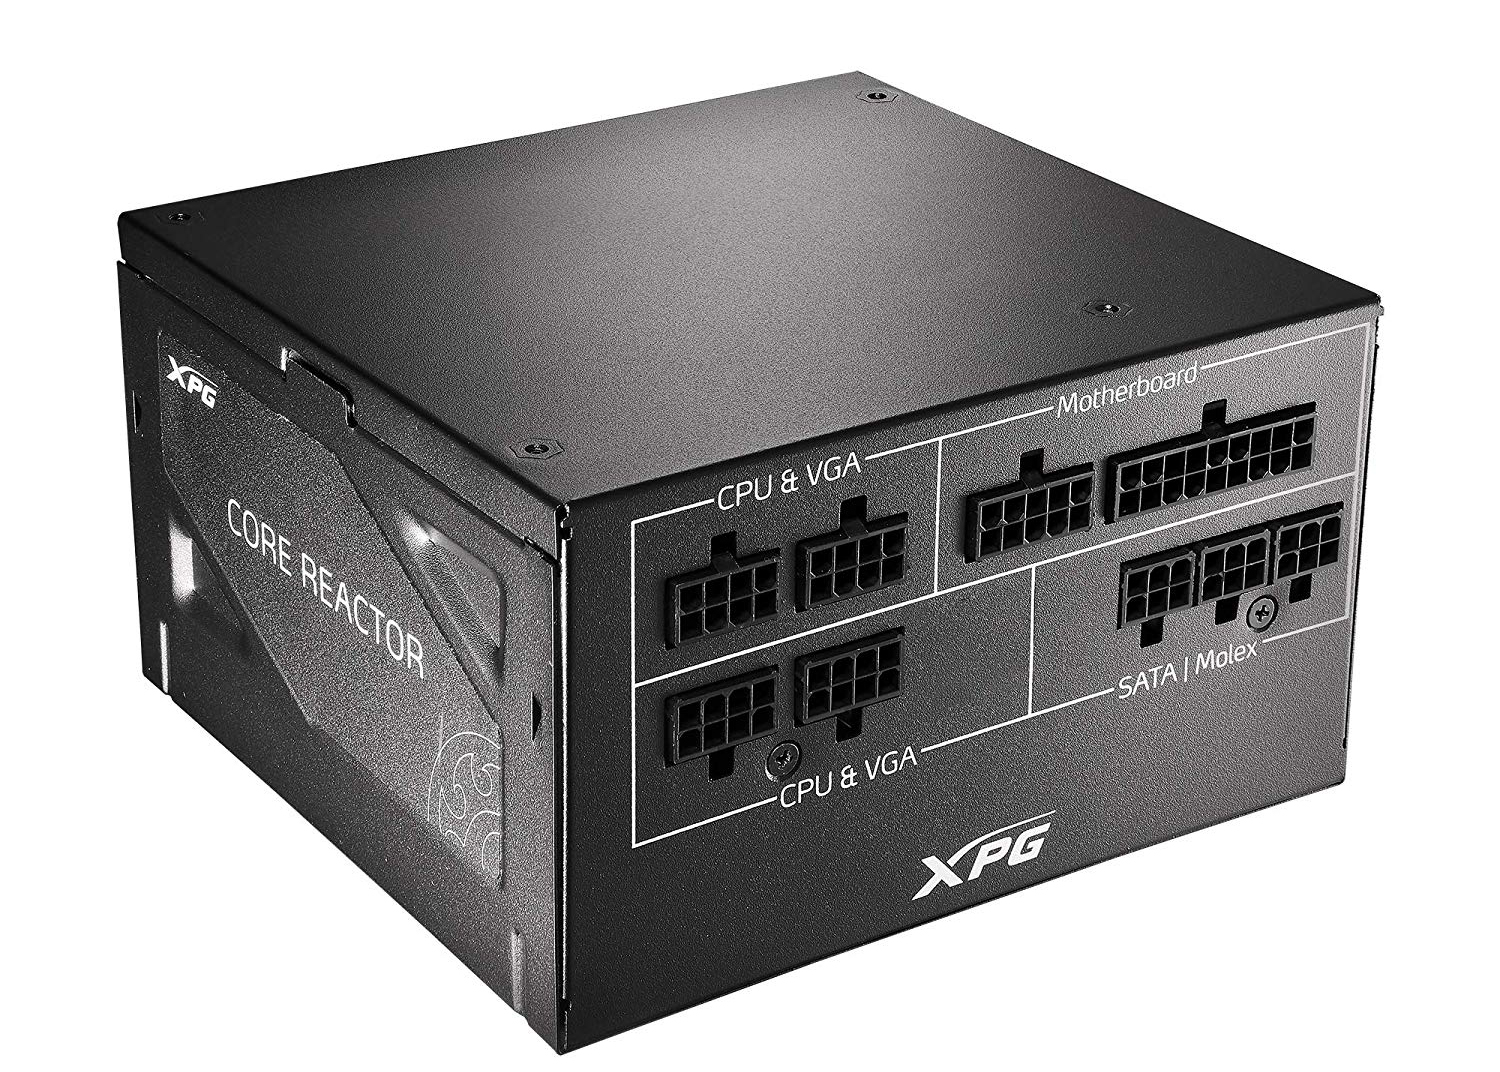 XPG Core Reactor 750W at an angle against a white background